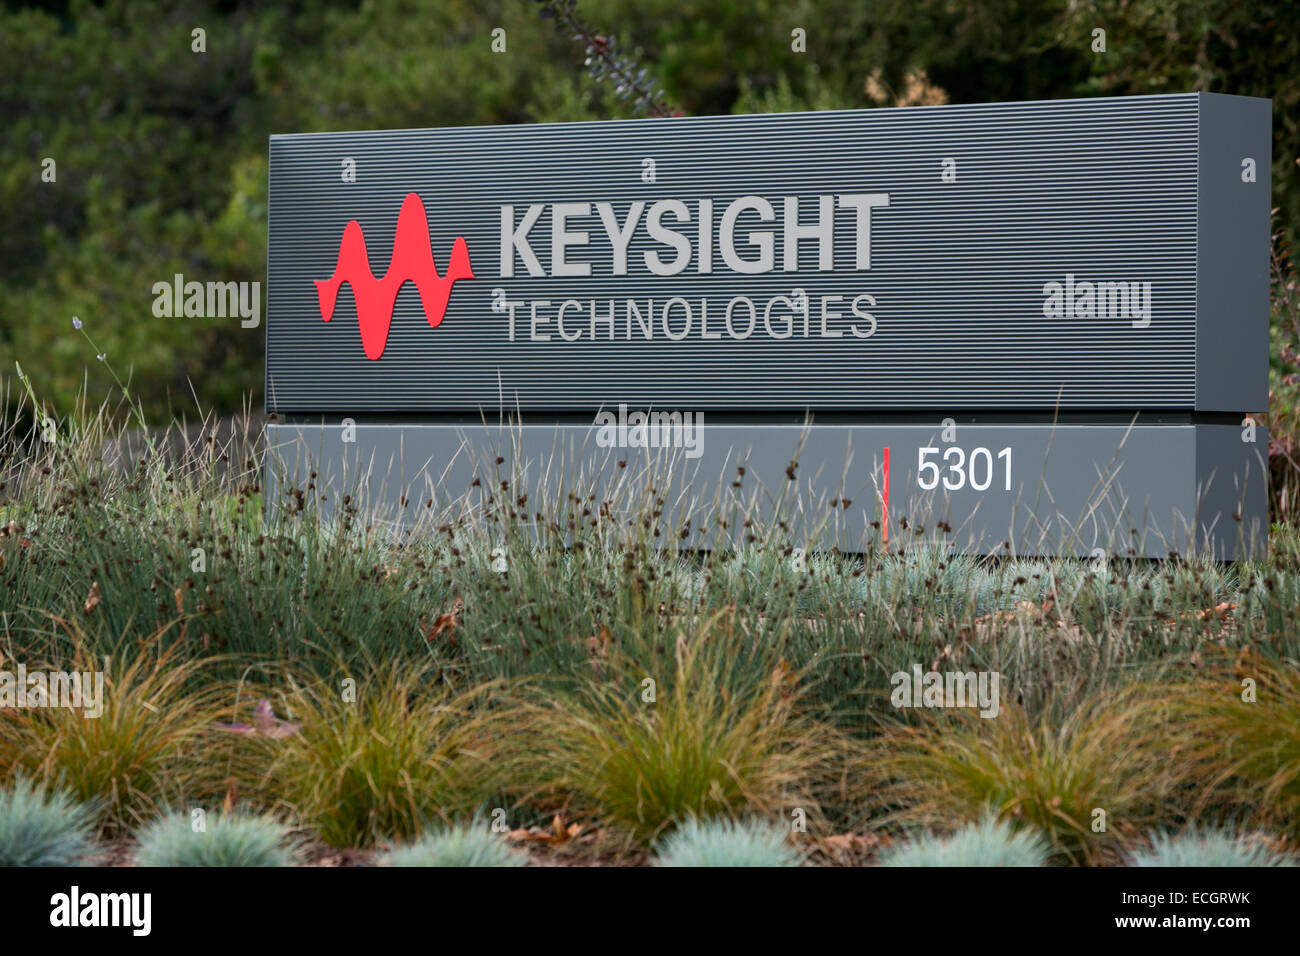 An office building occupied by Keysight Technologies. - Stock Image